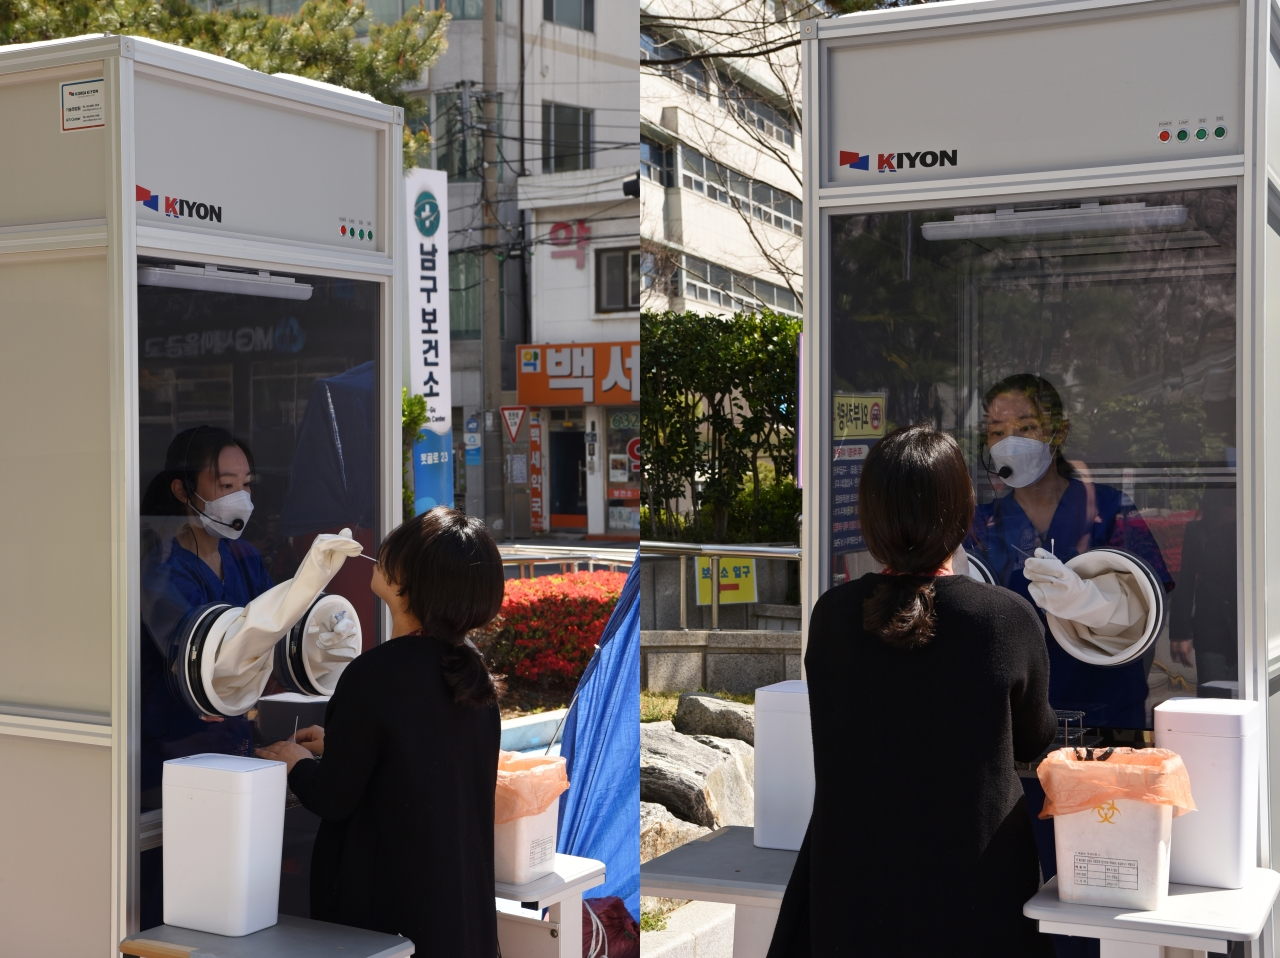 A testing booth at a public health center in Busan allows medical workers to swab patients without having to put full protective gear on. (Busan Nam-gu Health Center)